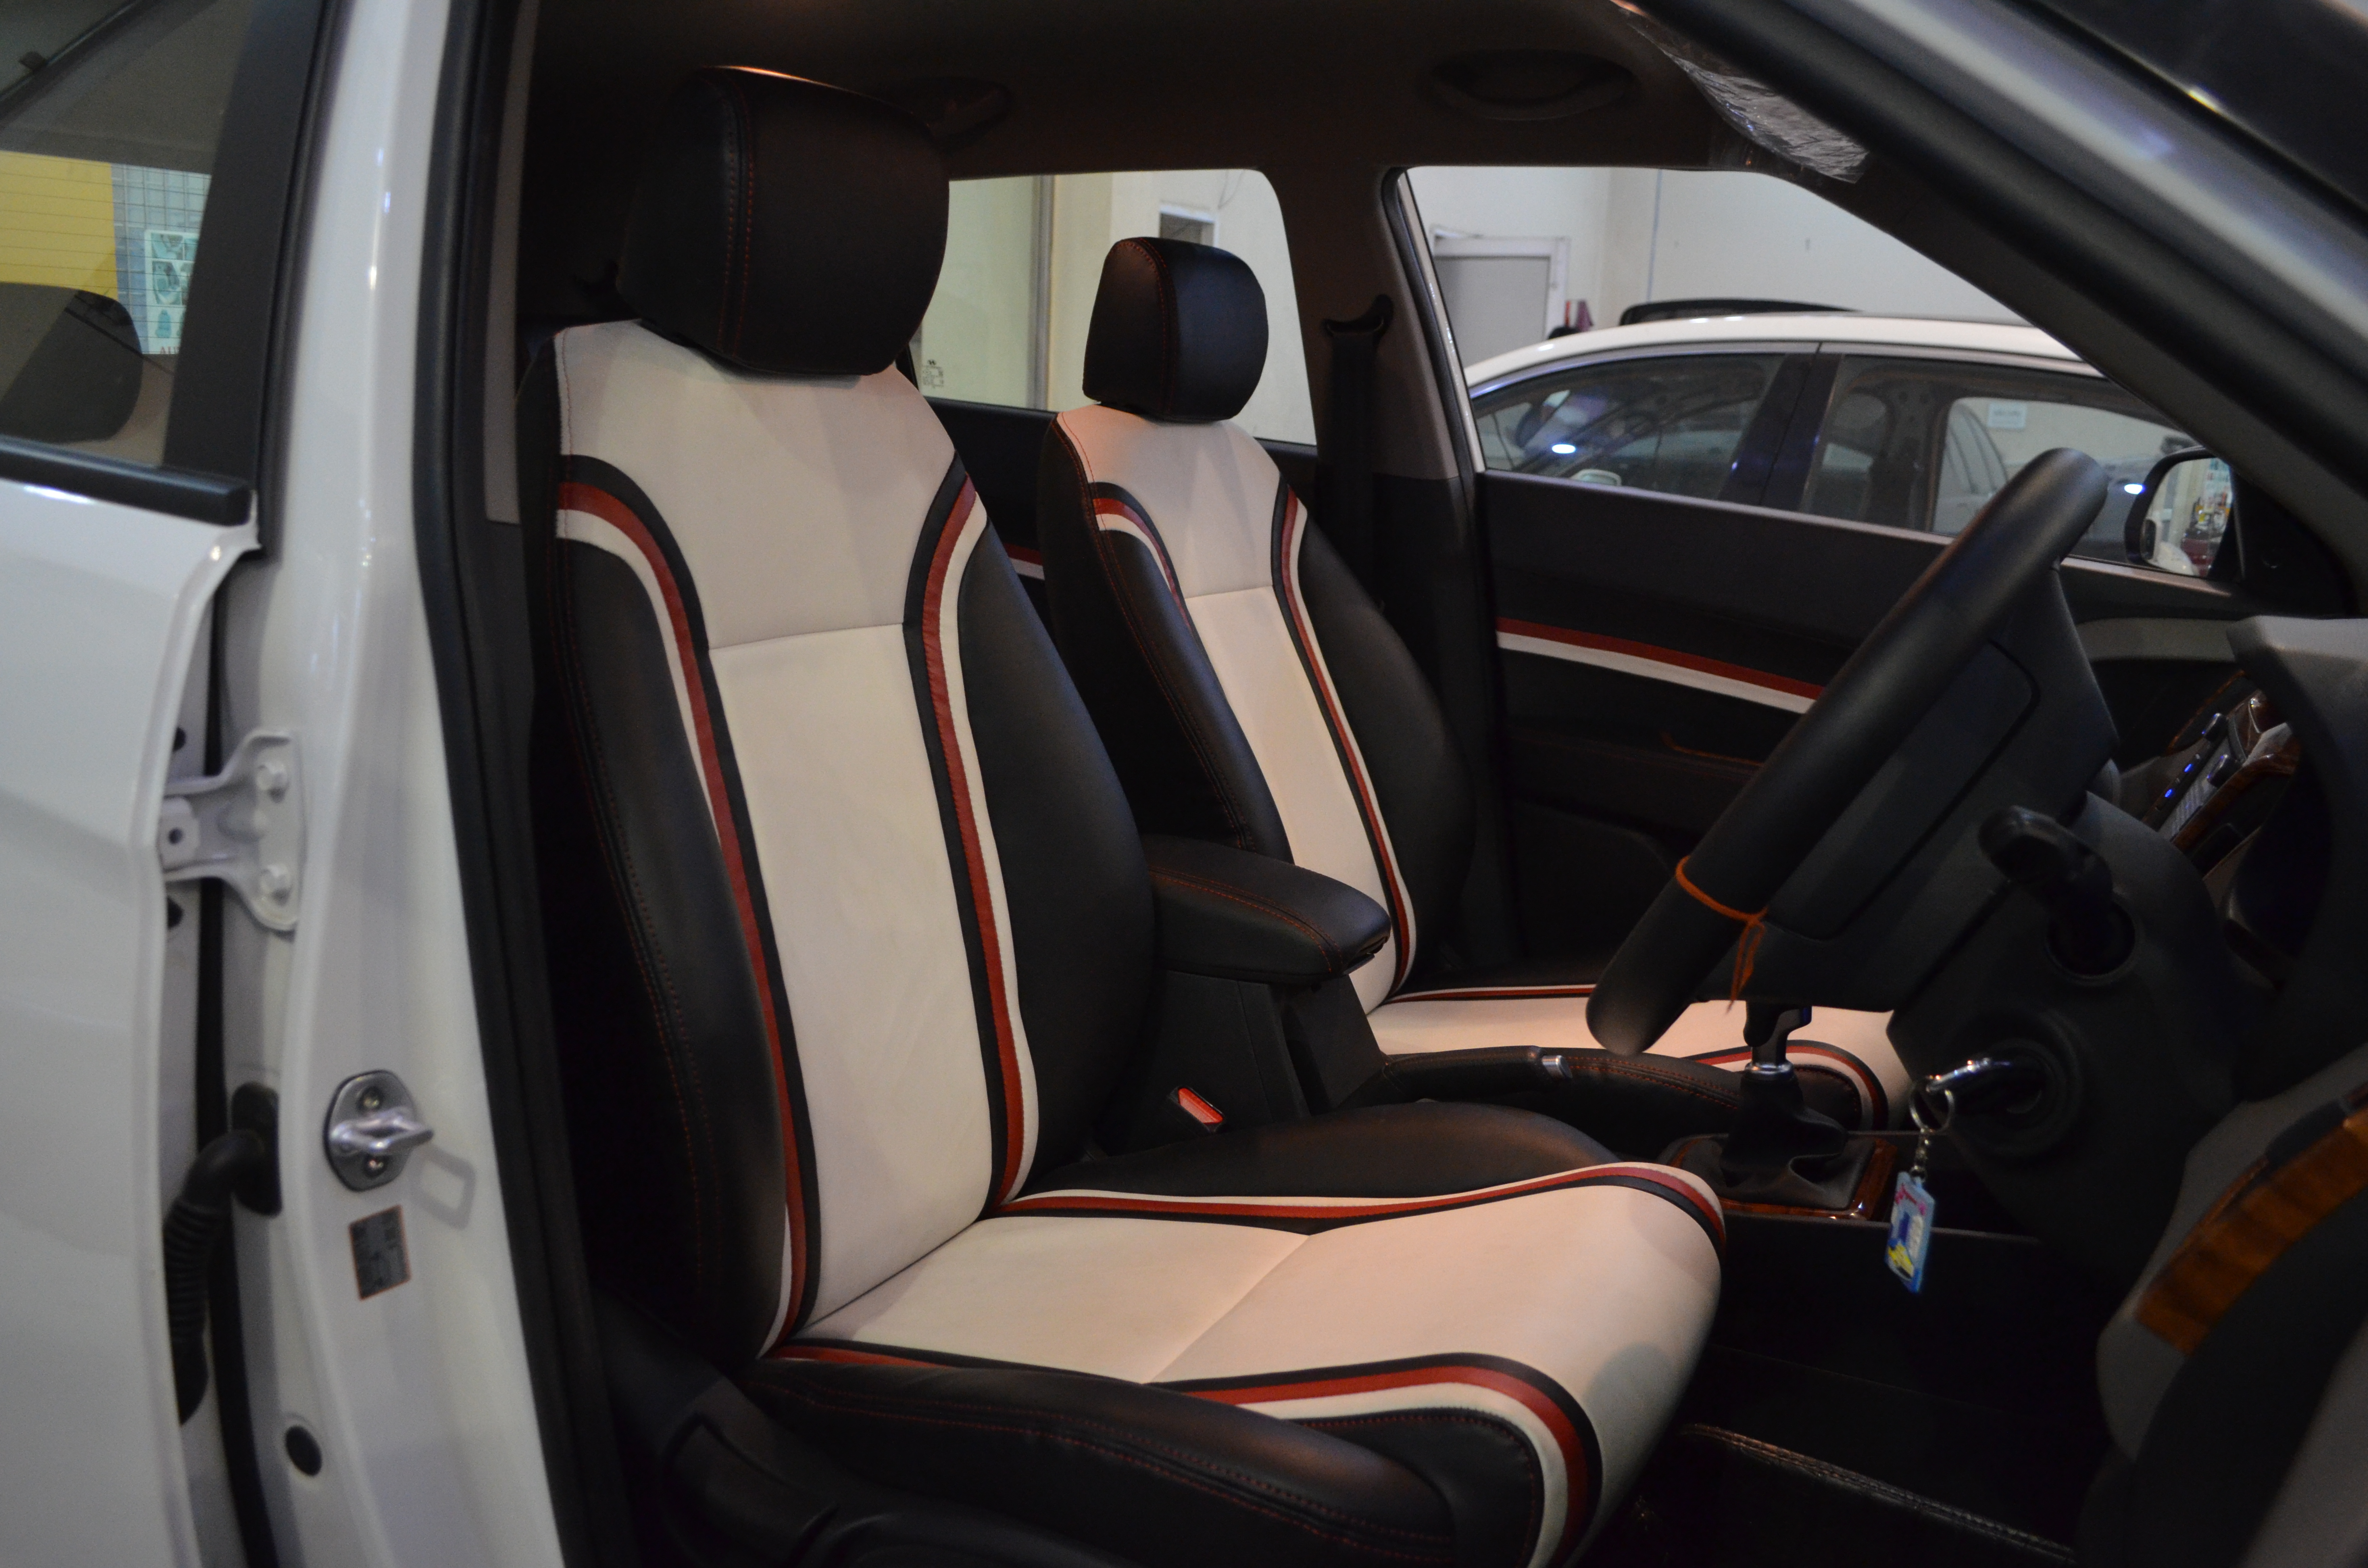 car details karlsson sofas covers bangalore benz img recliners in product leather seat custom mercedes